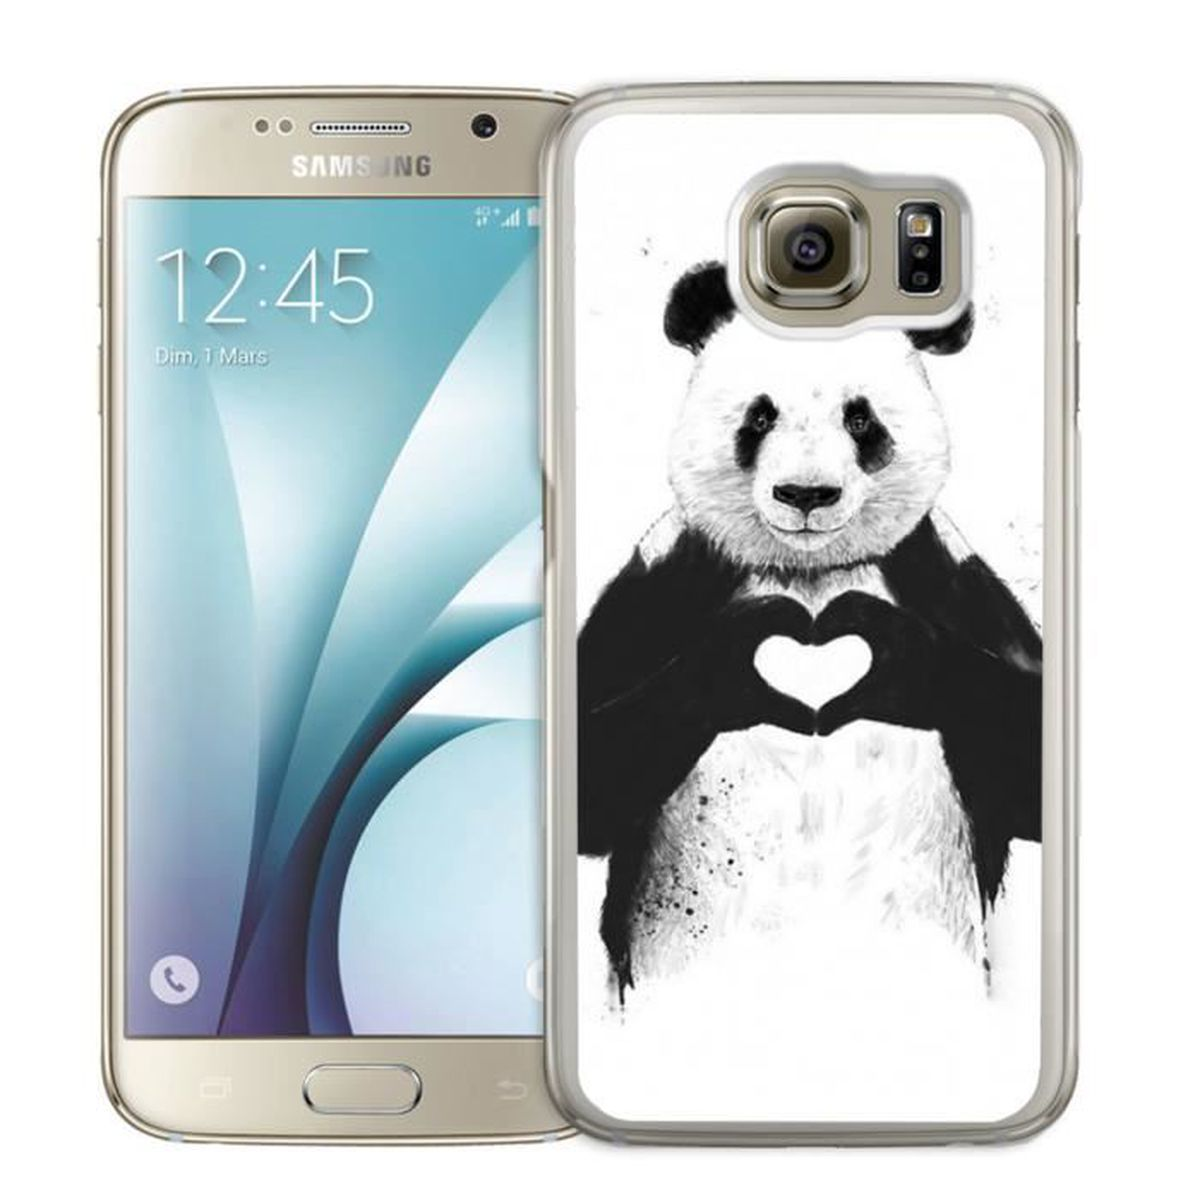 coque samsung galaxy s4 mini panda achat vente pas cher. Black Bedroom Furniture Sets. Home Design Ideas